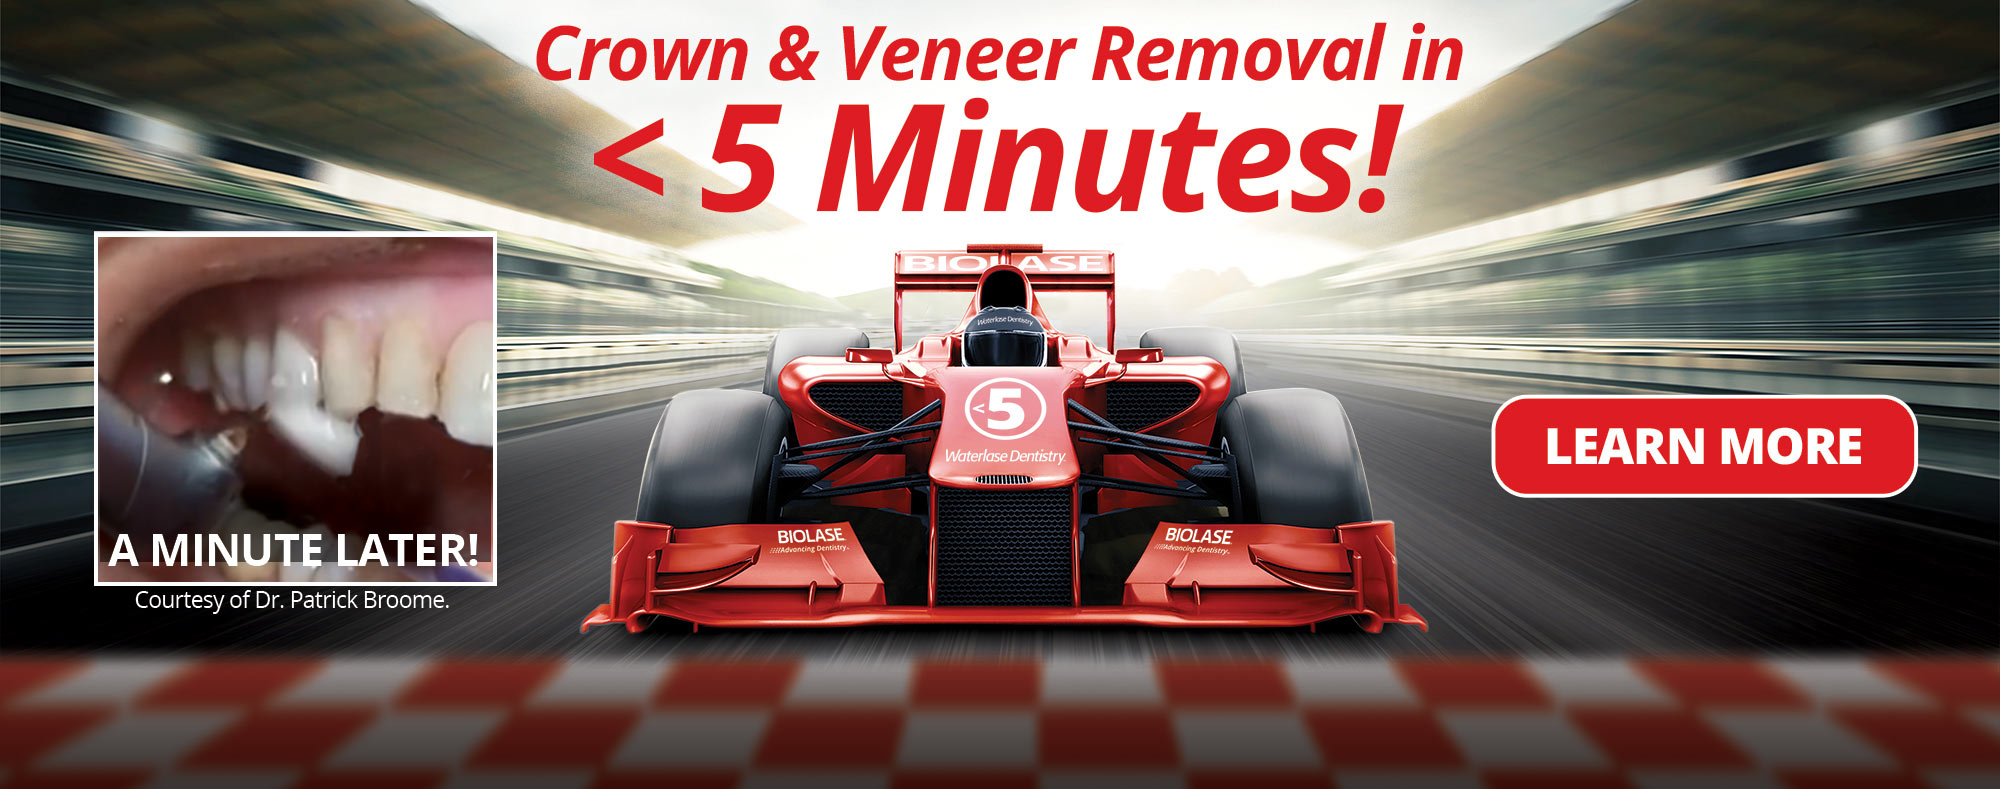 Crown & Veneer Removal in Less Than 5 Minutes!